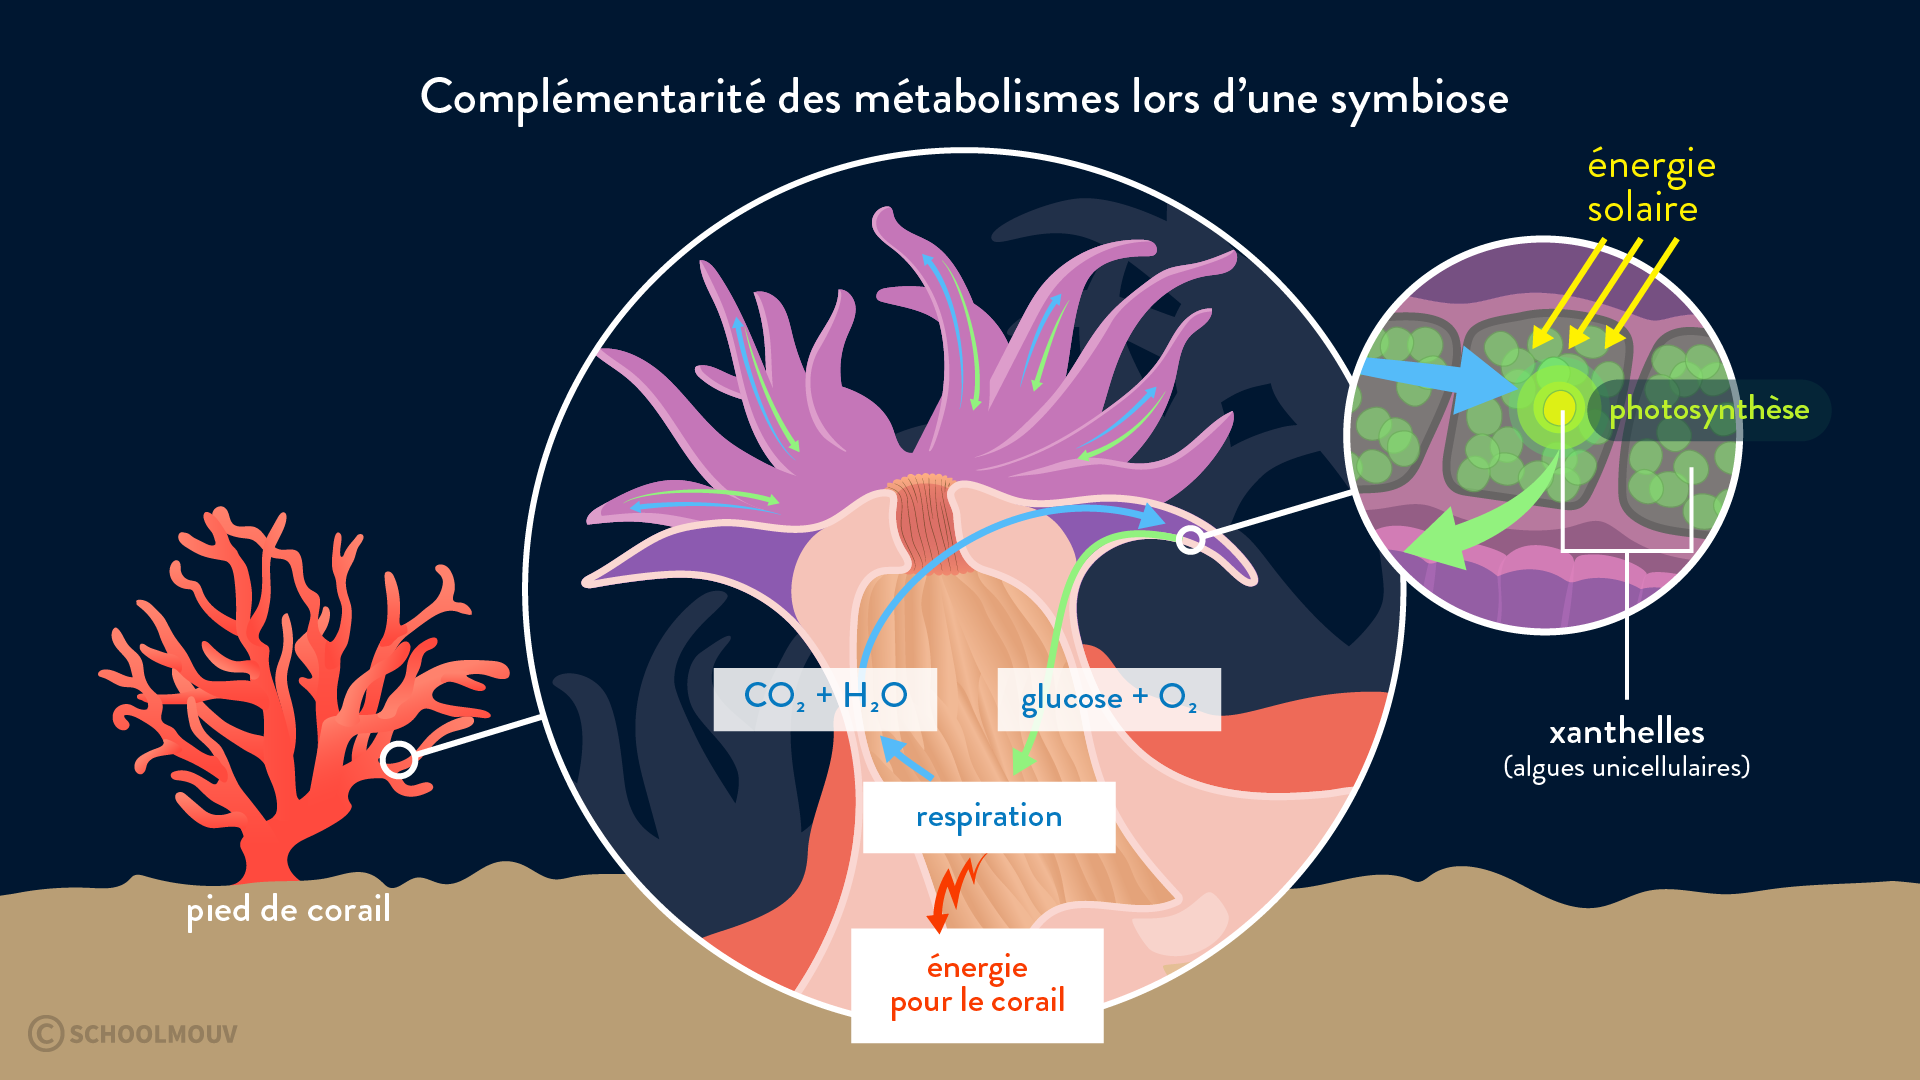 corail xanthelles symbiose photosynthèse respiration relation symbiotique